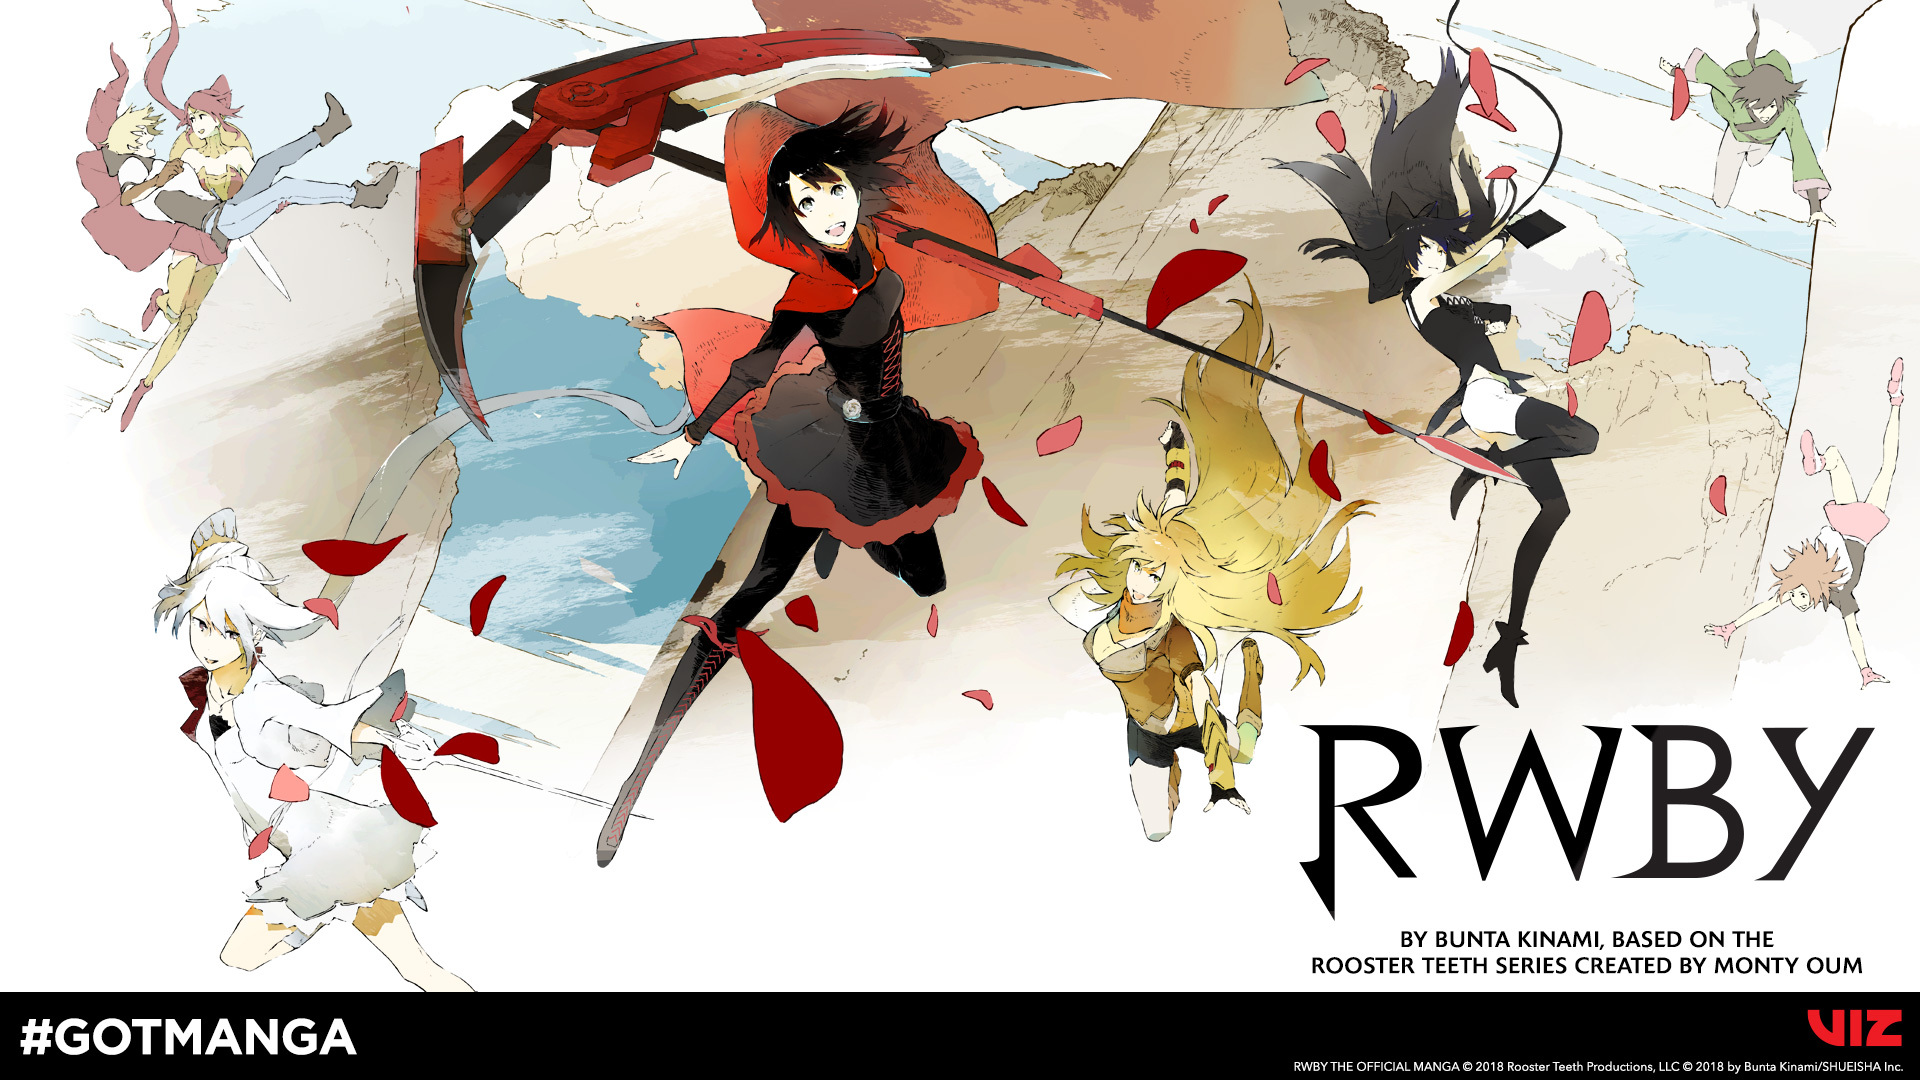 Rwby Wallpaper Desktop 1920x1080 (1)